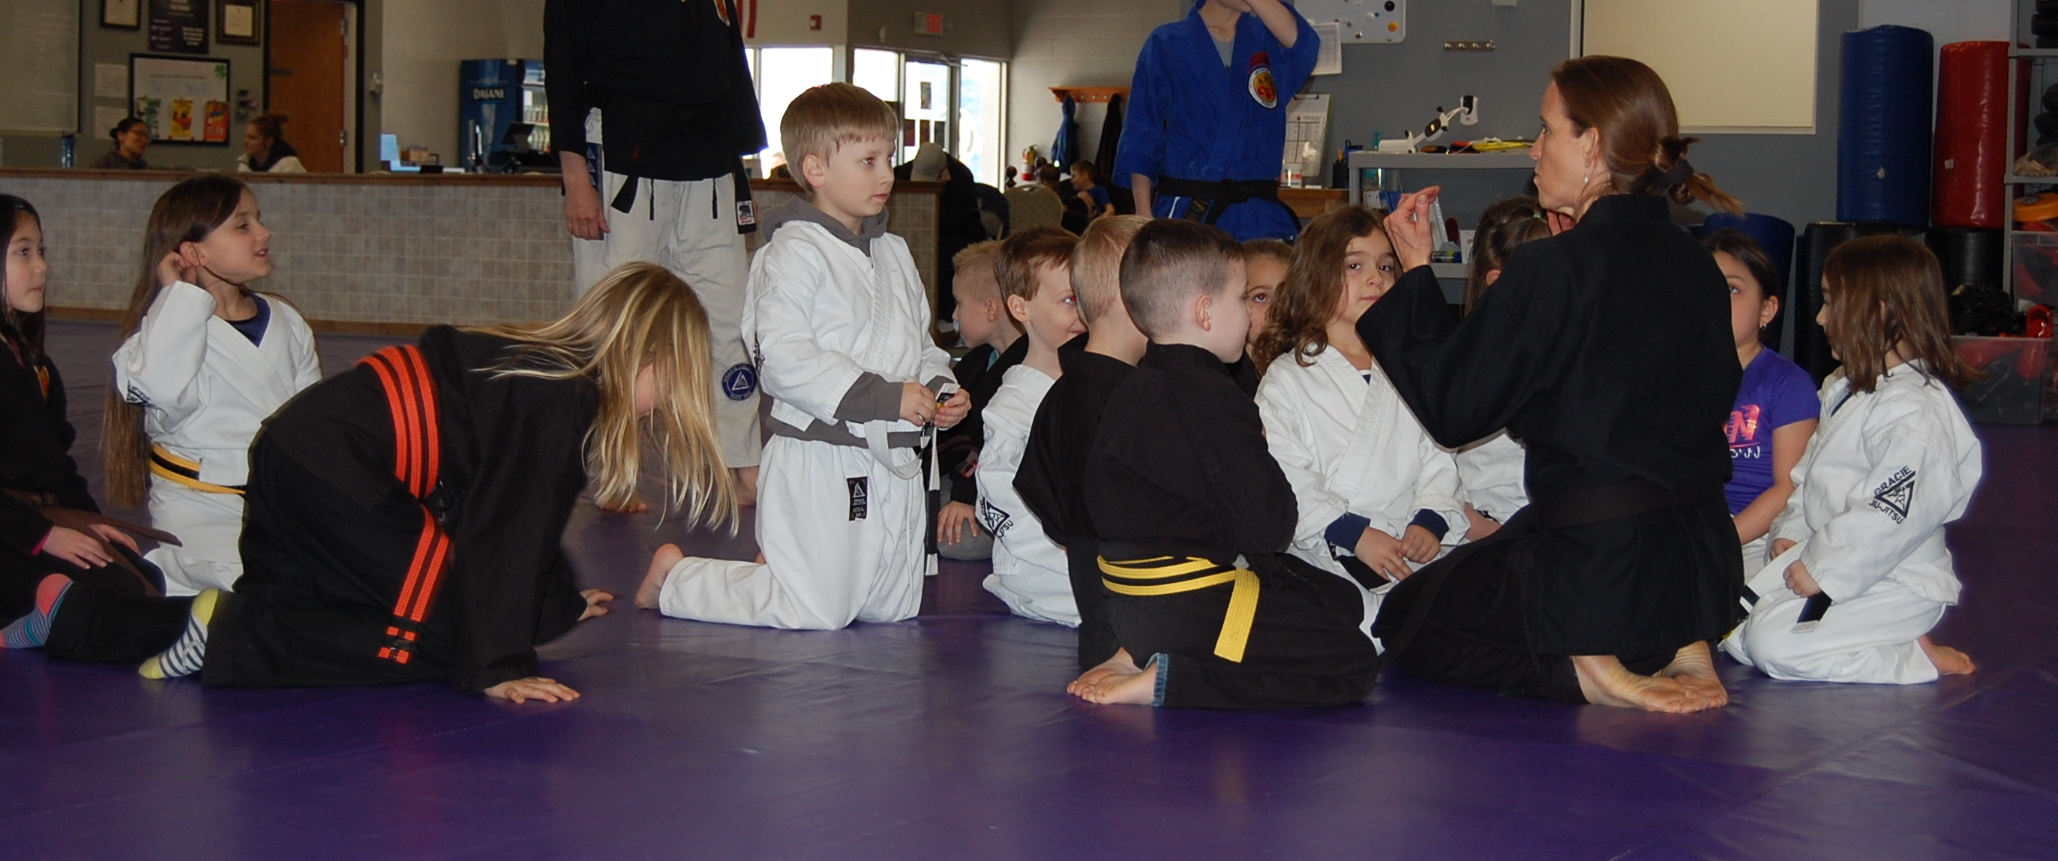 Kids learning self-defense by practicing juijitsu techniques